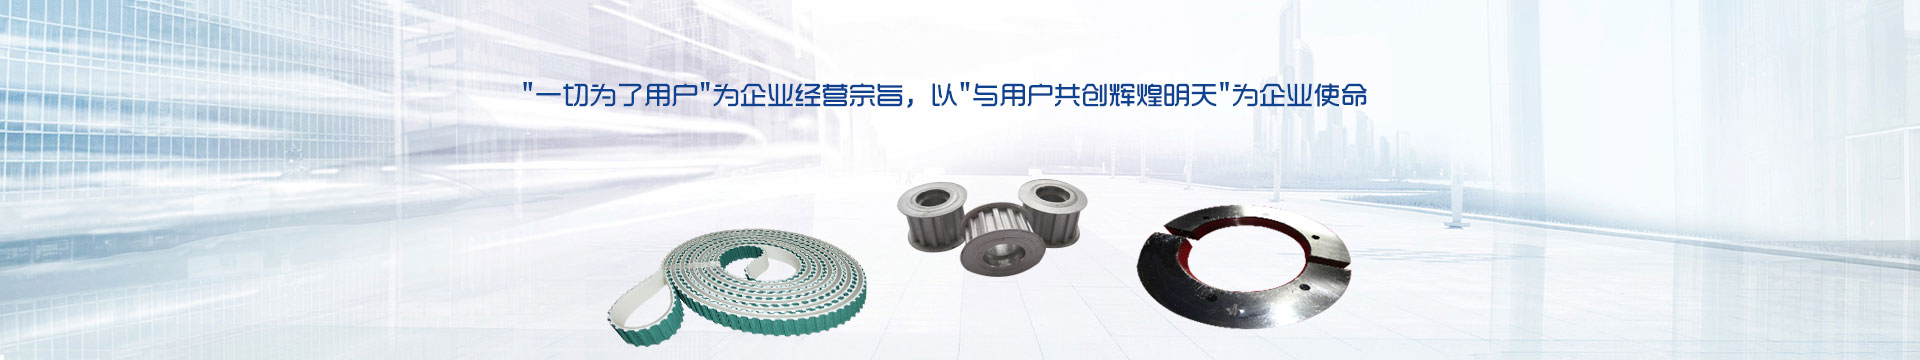 Wuxi Taihu wheel-belt factory